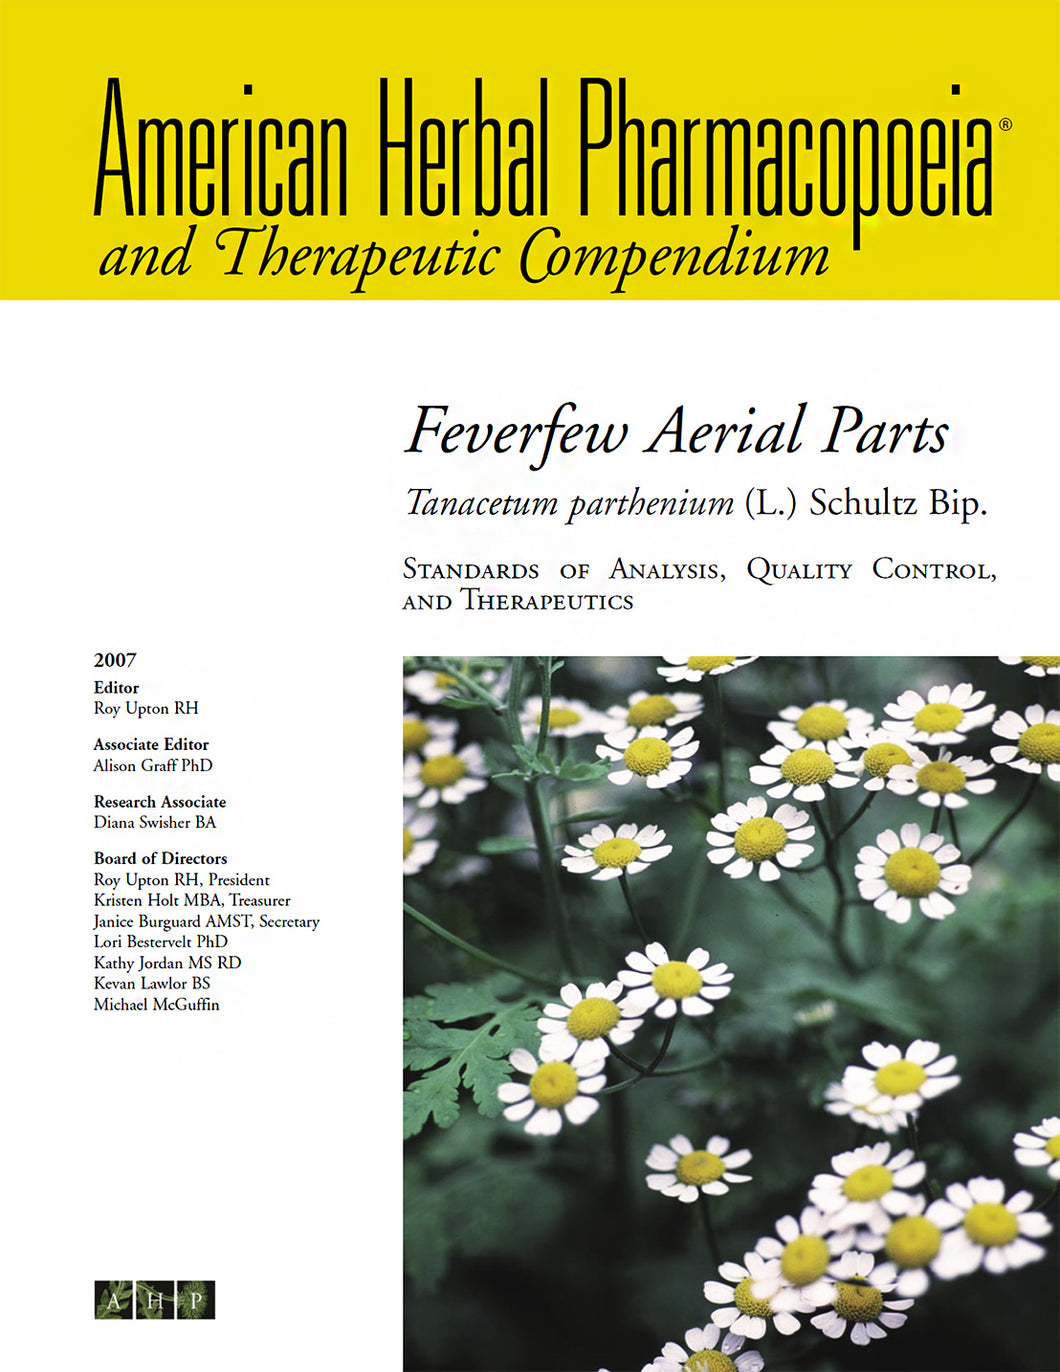 Feverfew Aerial Parts